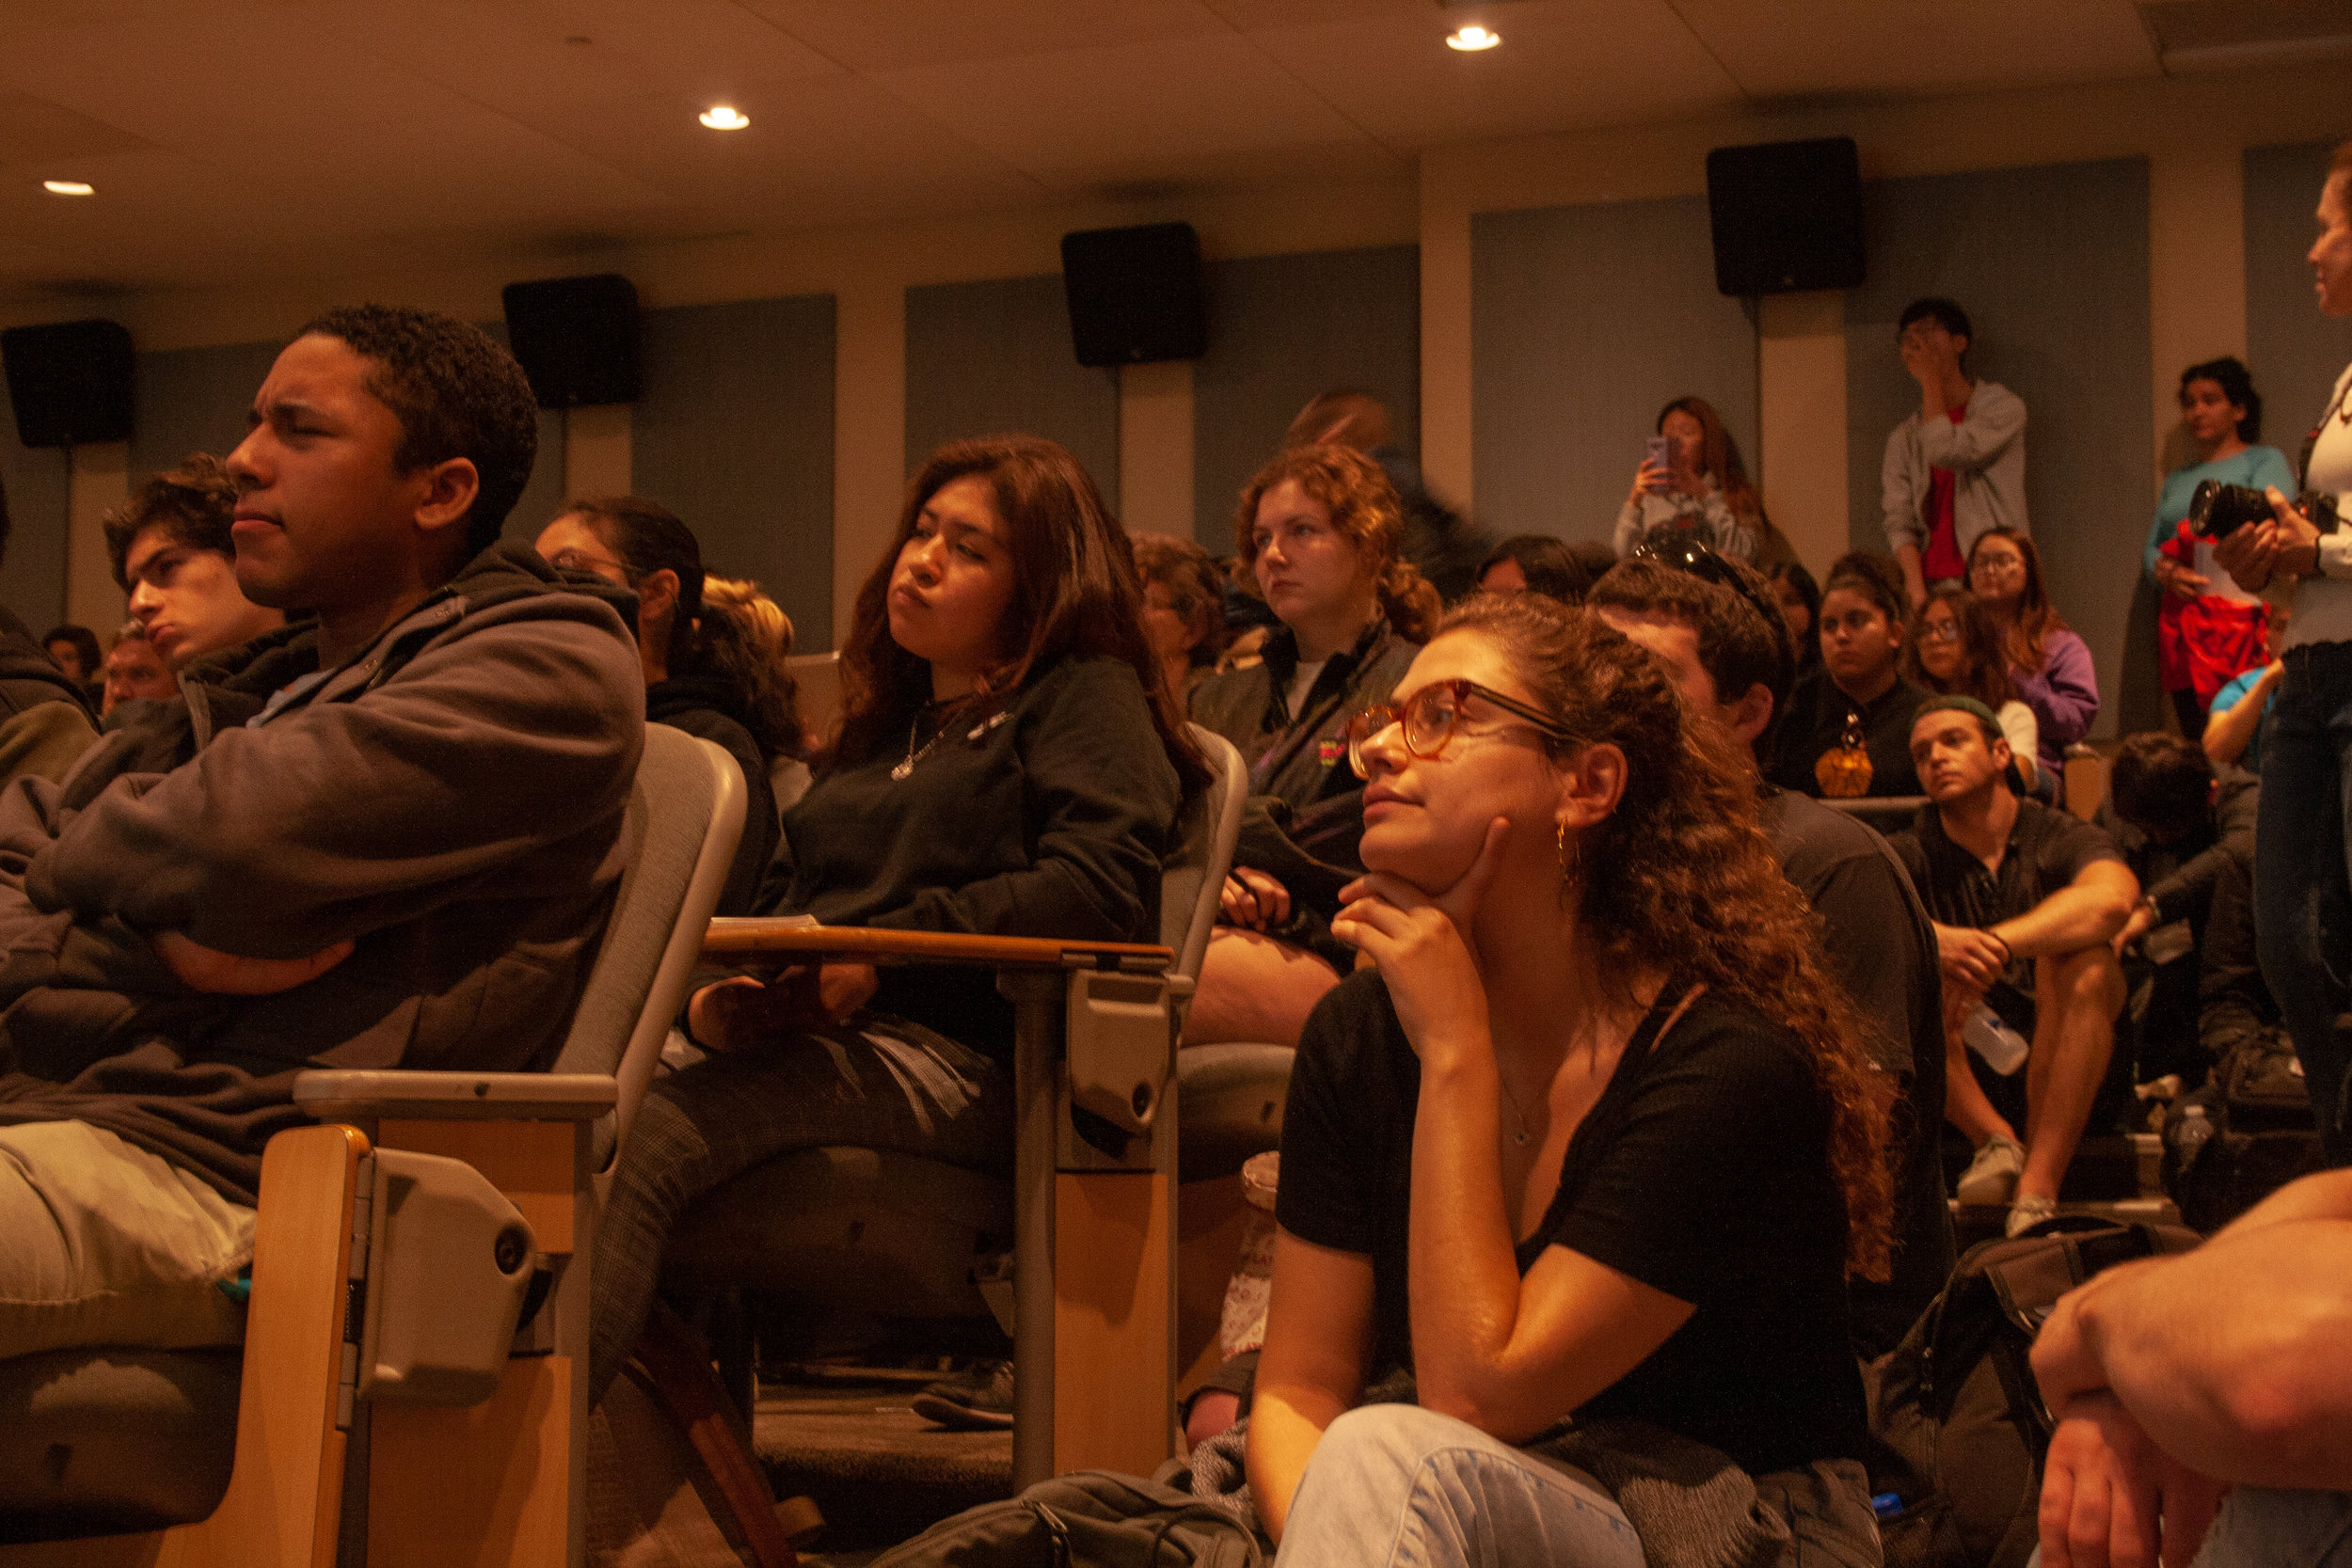 """Santa Monica College students listen to guest speaker Jon Rynn's lecture """"How the New Green Deal Should Look Like"""". This lecture took place at main campus Santa Monica College during environmental week, April 23, 2019. Santa Monica, Calif. (The Corsair/ Janet Ali)"""